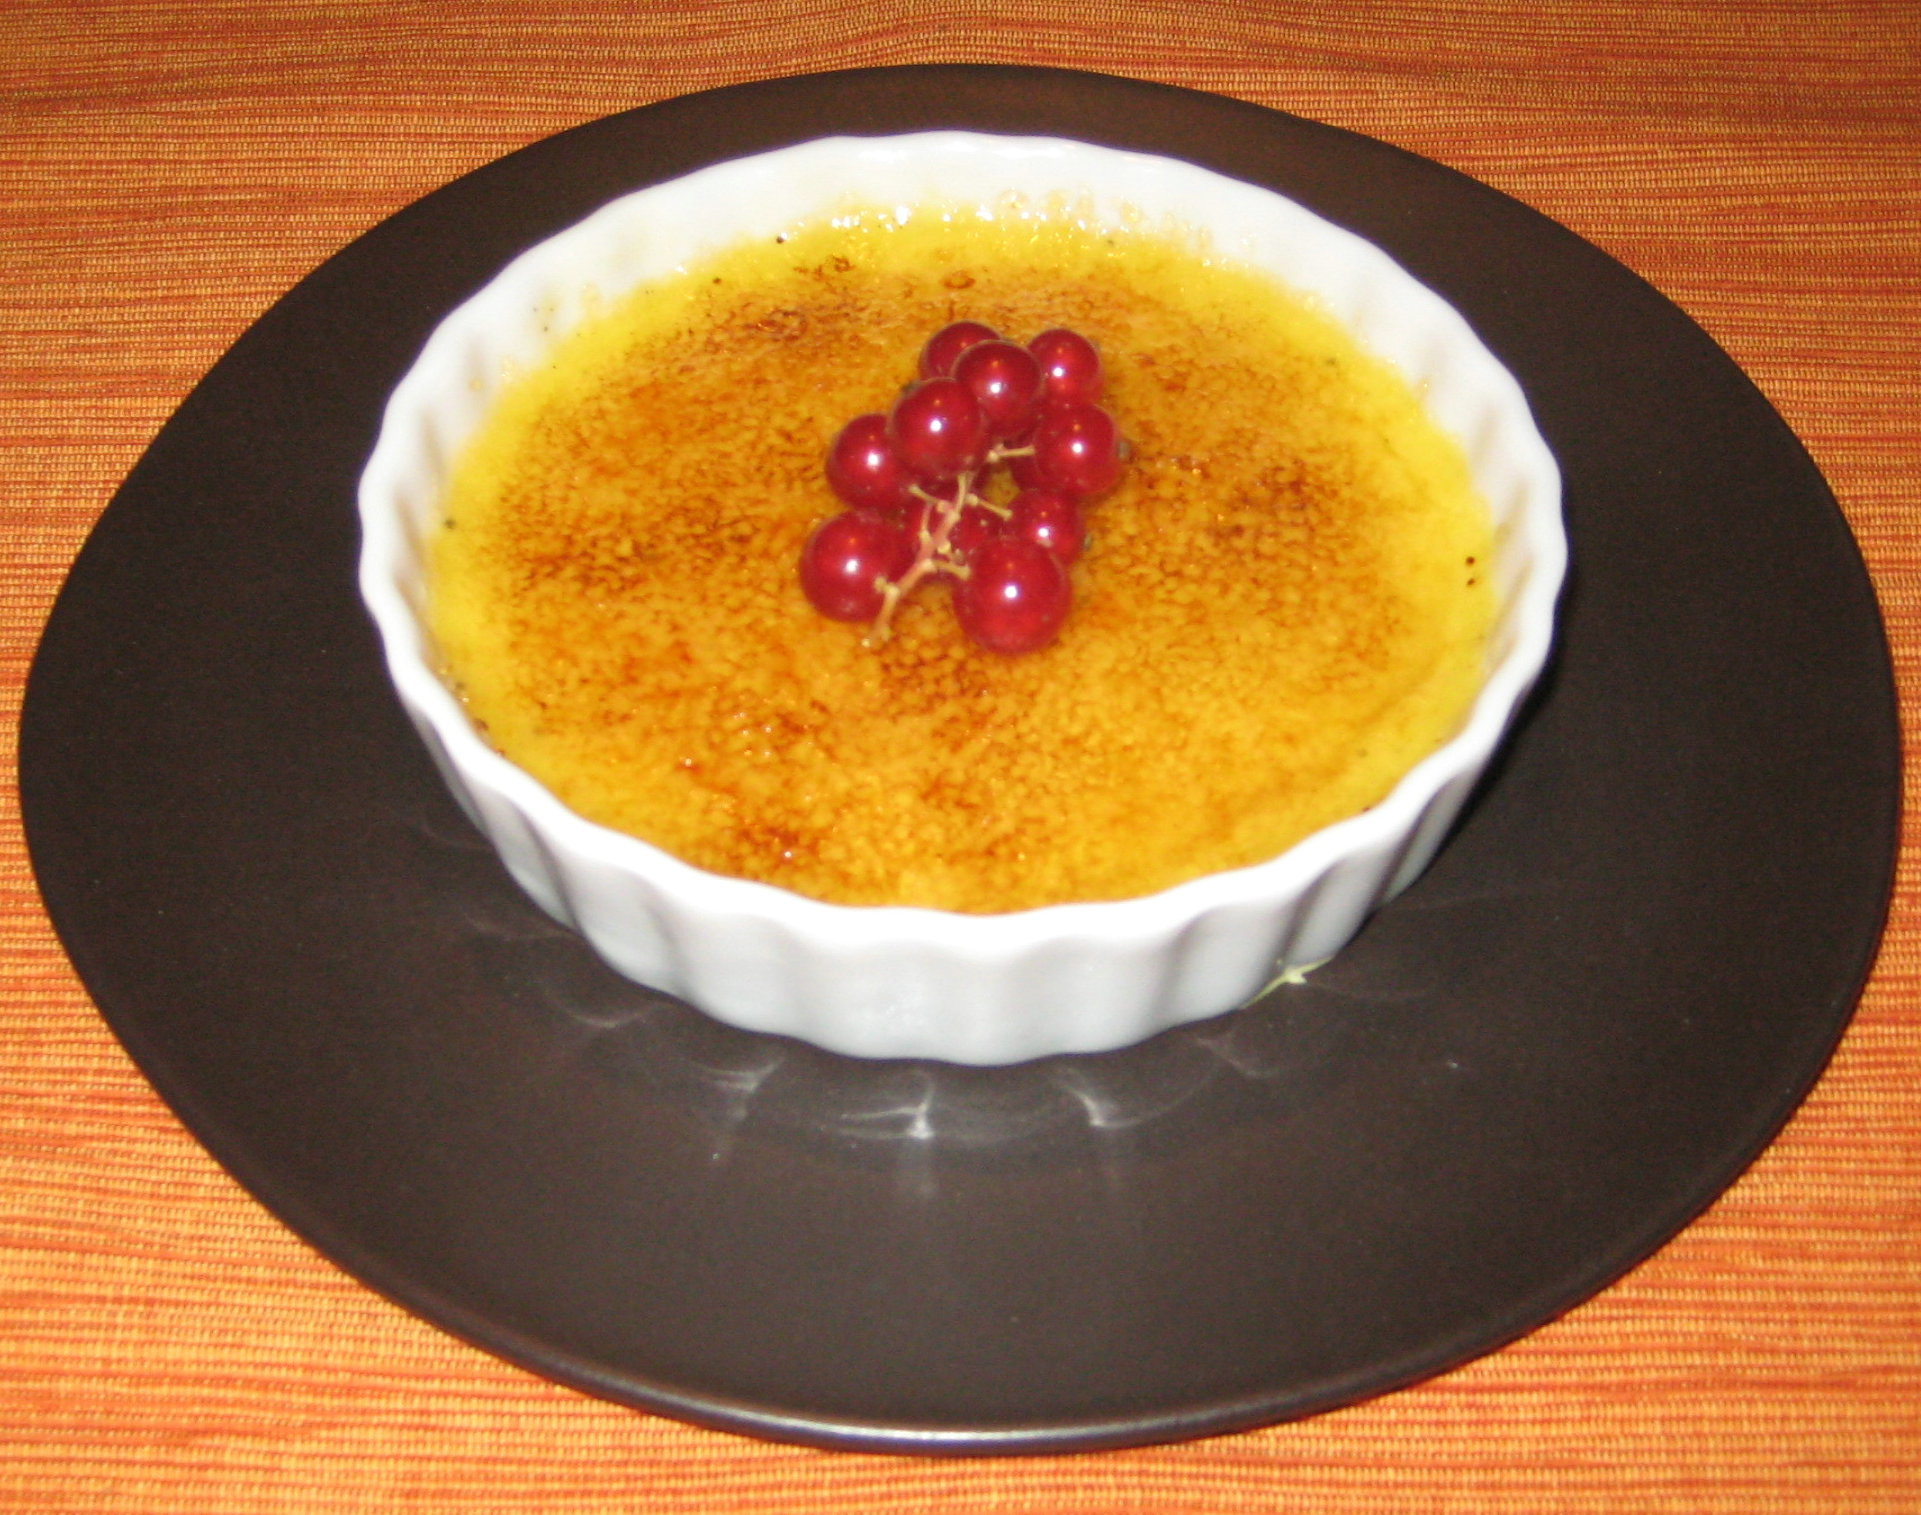 Grand Marnier creme brulee